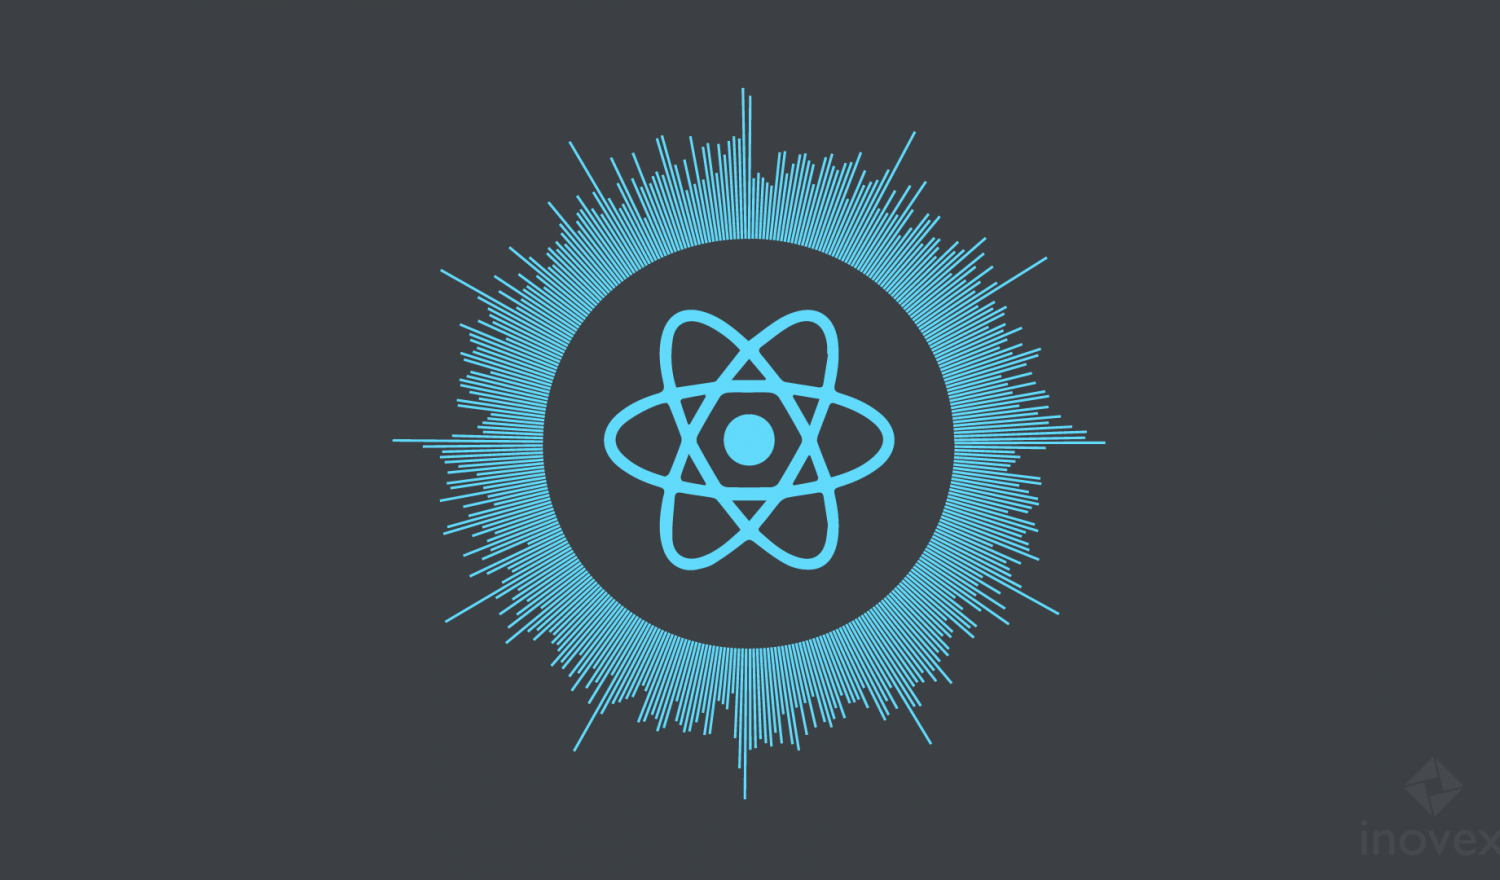 The react native logo surrounded by 365 bars